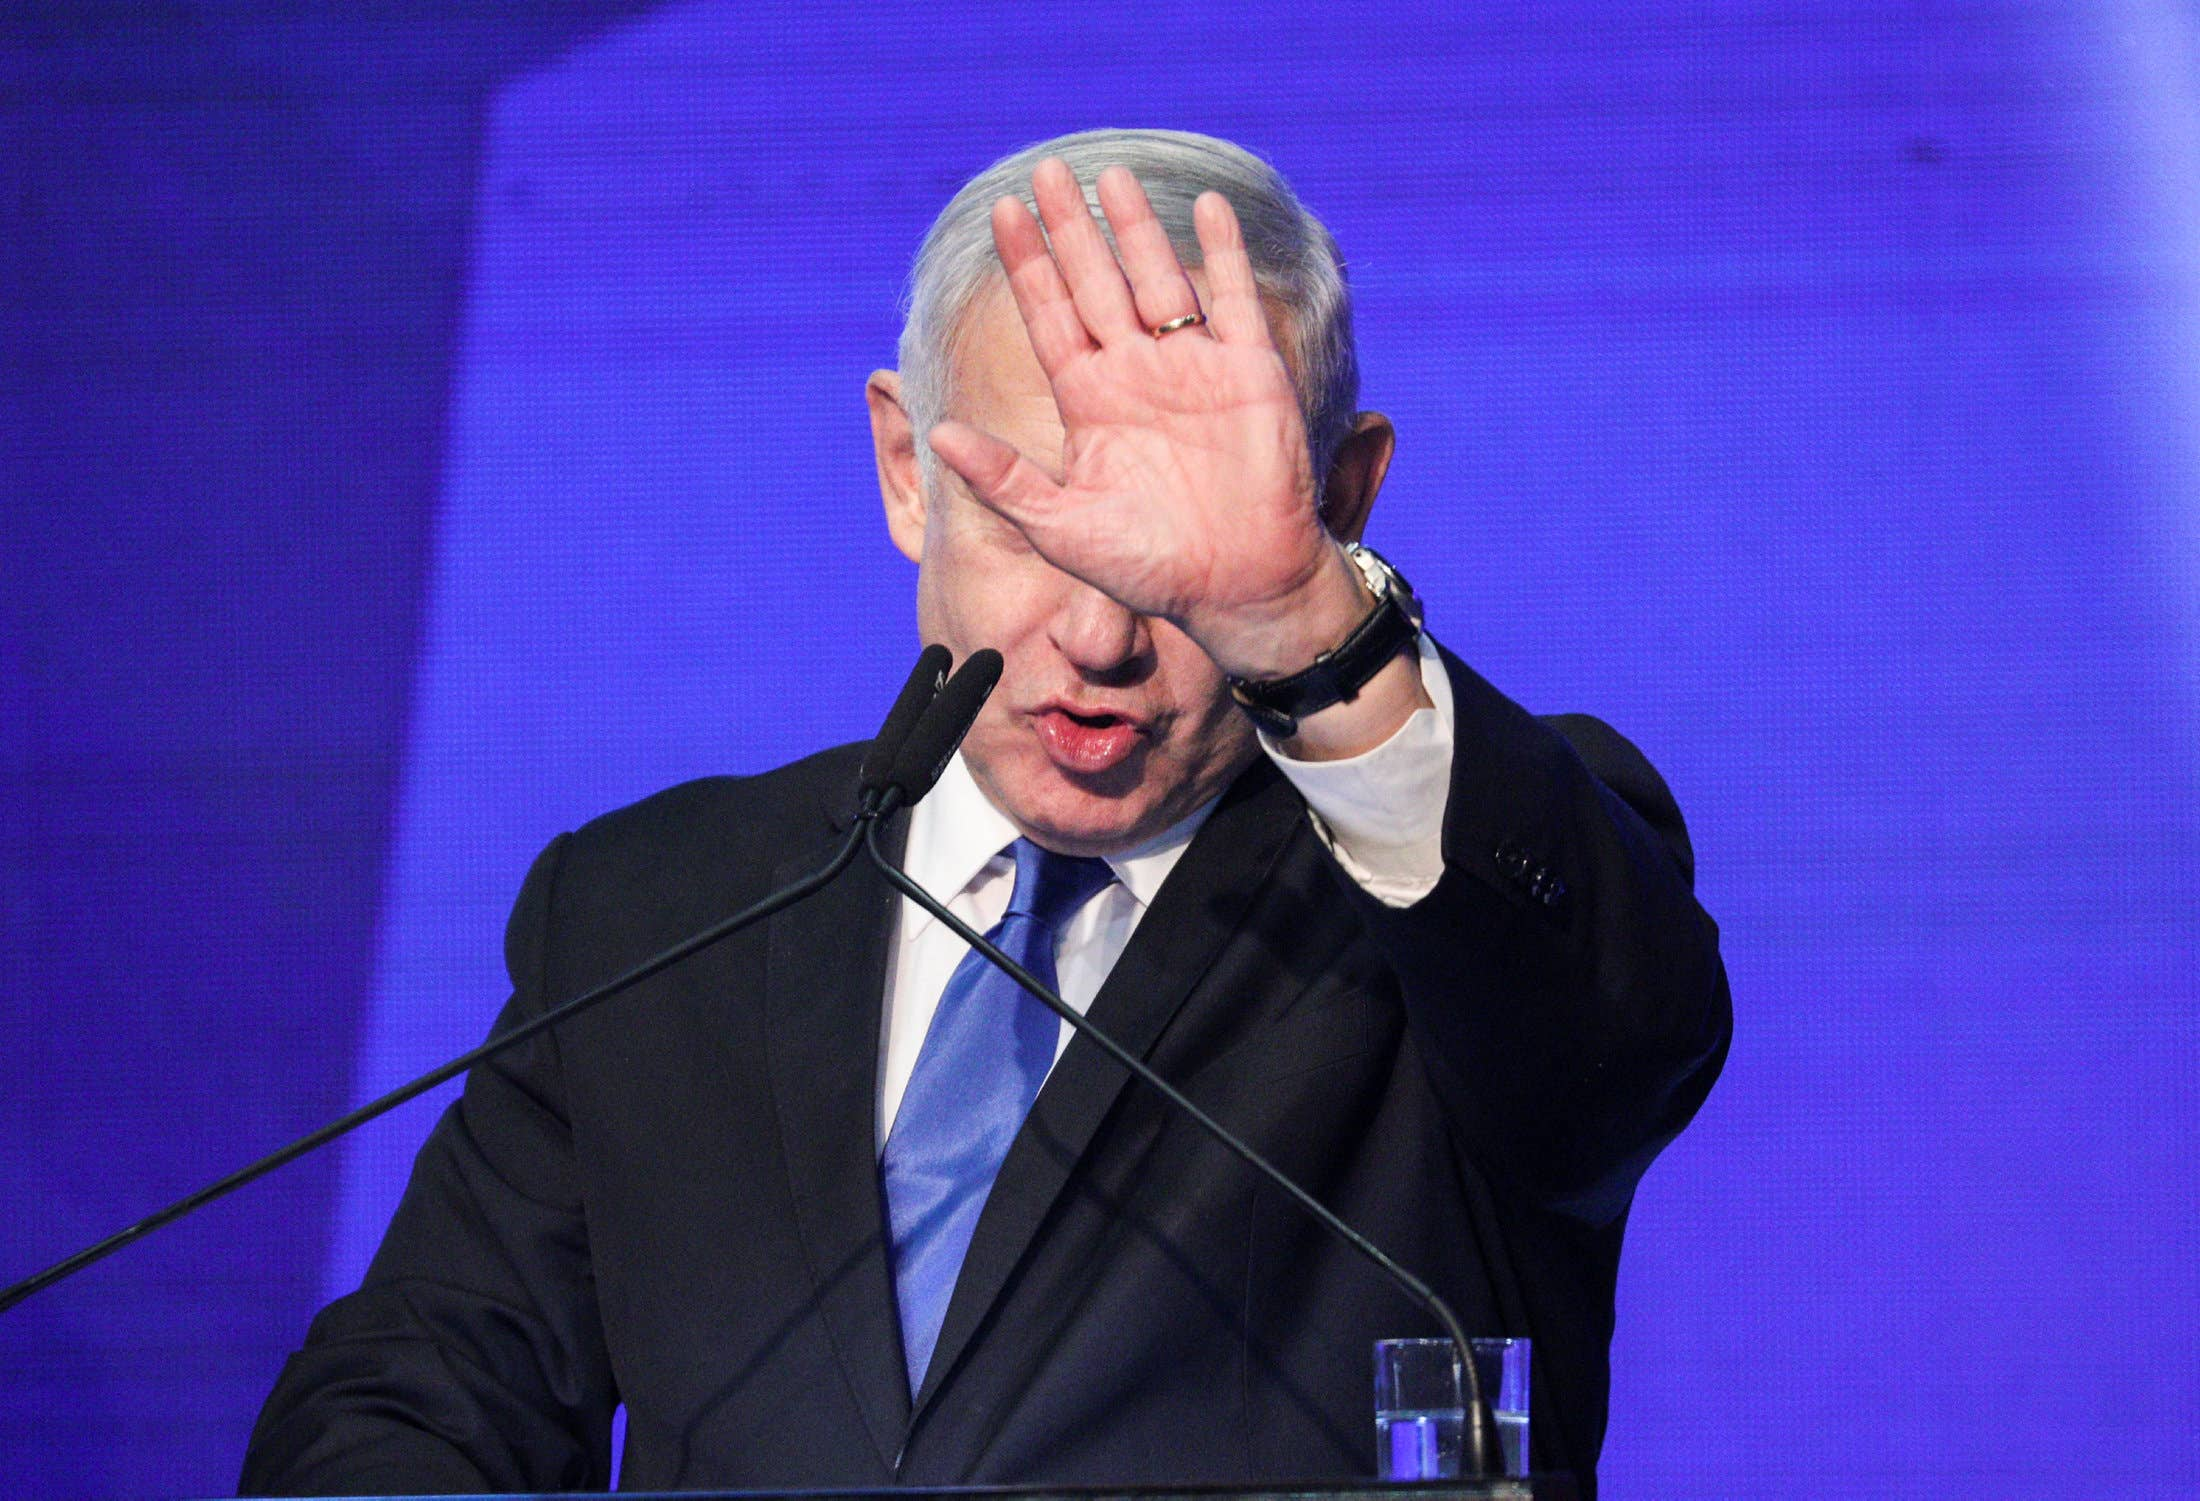 """Israelis voted for """"Anybody, But Bibi"""" and unfortunately for Israelis, that is exactly what they are getting (https://img.haarets.co.il/img/1.9540603/2746860869.jpg?precrop=2115)"""